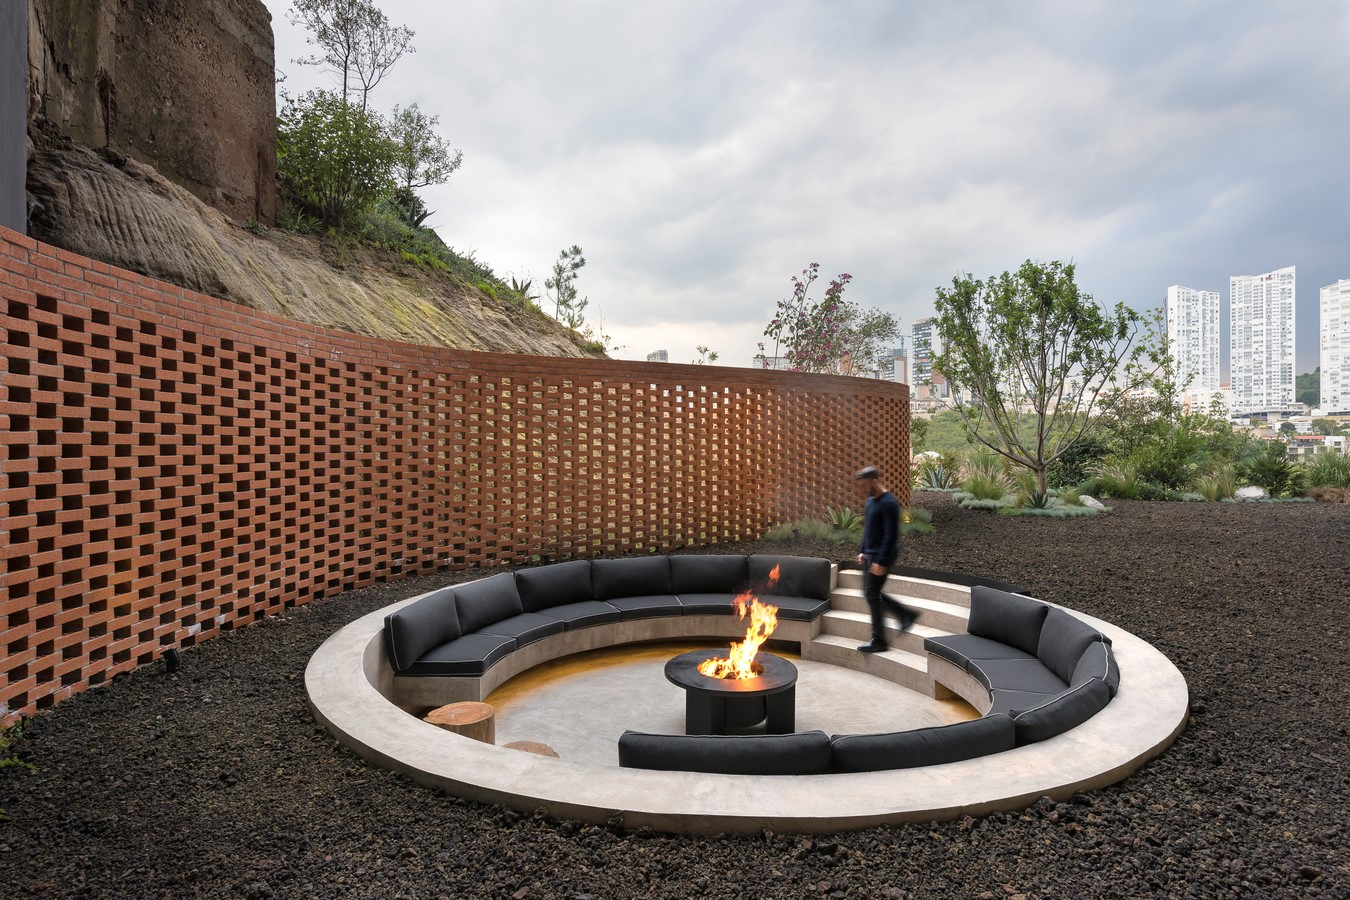 30 Examples of a conversation pit - Sheet23